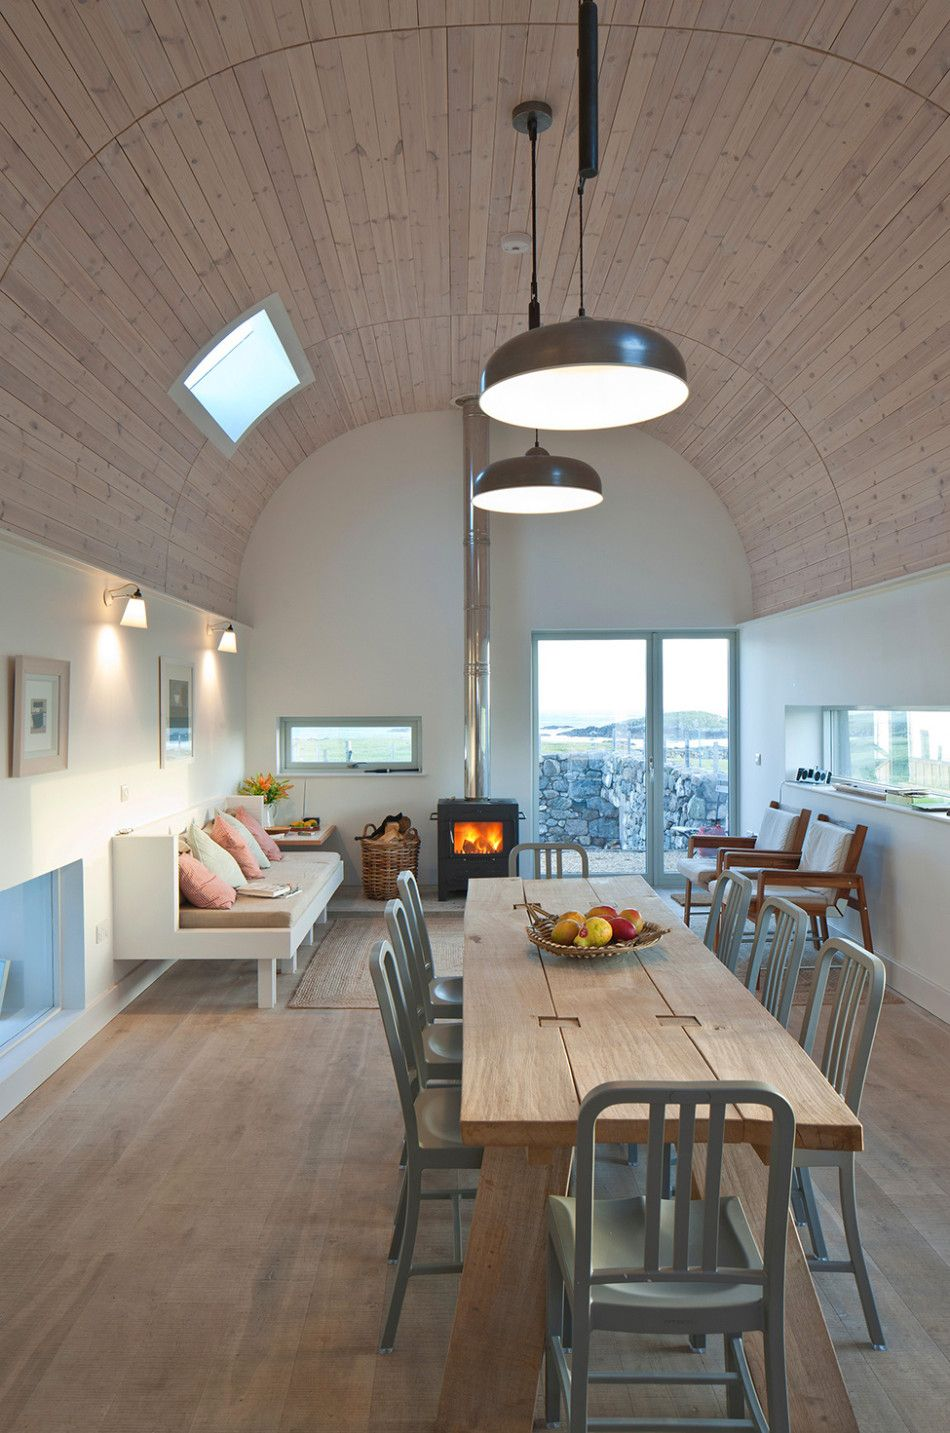 interior of modern curved roof house in Scotland by architect Murray Kerr of Denizen Works